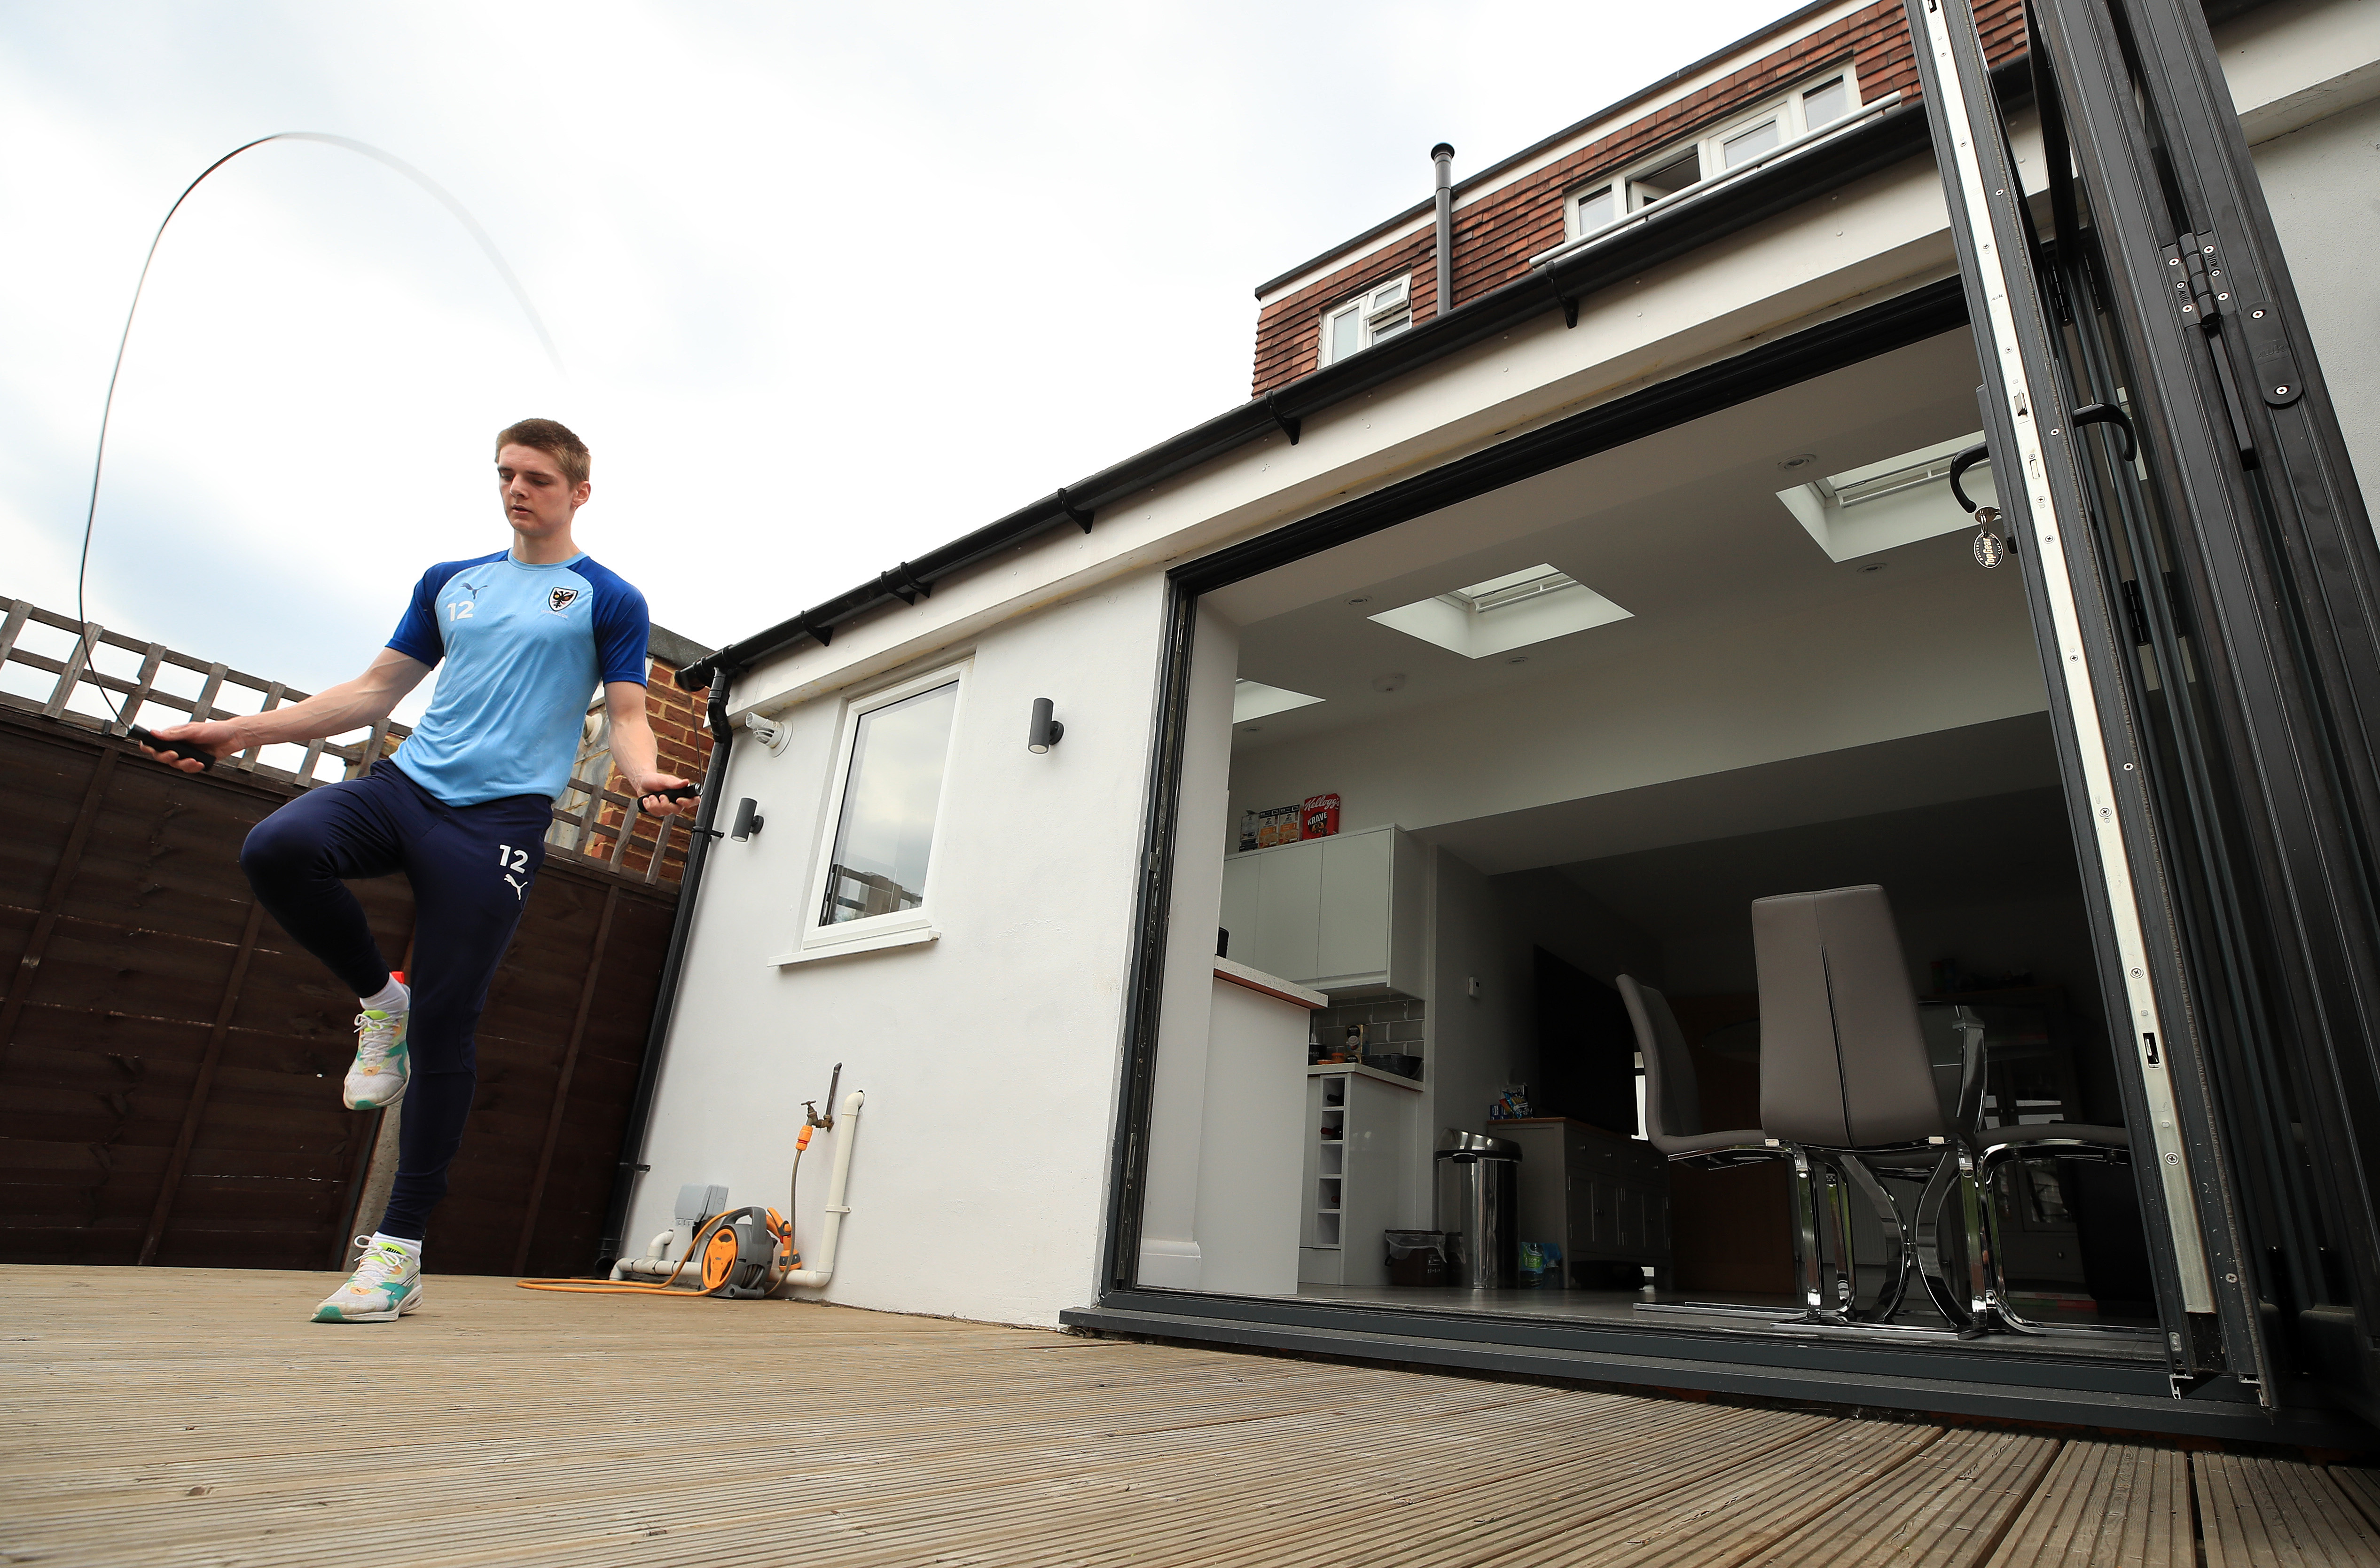 CHEAM, ENGLAND - MAY 27: AFC Wimbledon Footballer Jack Rudoni trains at home during the Coronavirus Pandemic on May 27, 2020 in Cheam, England. (Photo by Andrew Redington/Getty Images)